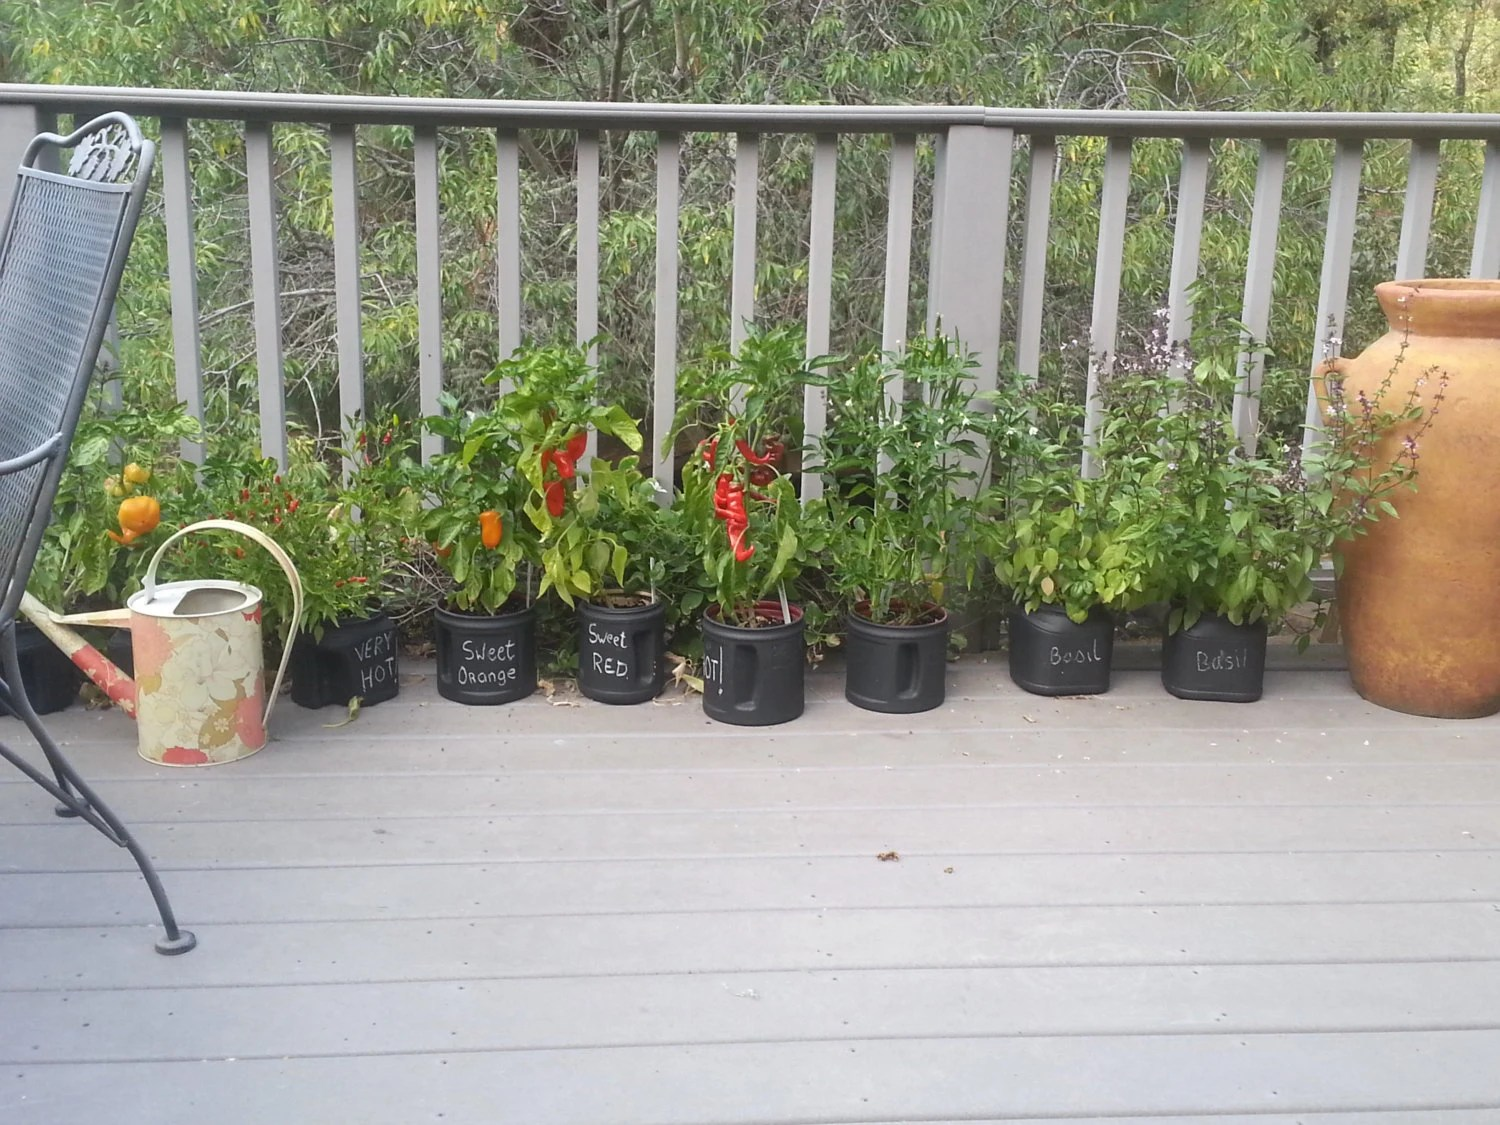 Red Rooster Coffee Garden Valley Hot Rooster Chili Pepper Seeds Small Space Garden Patio